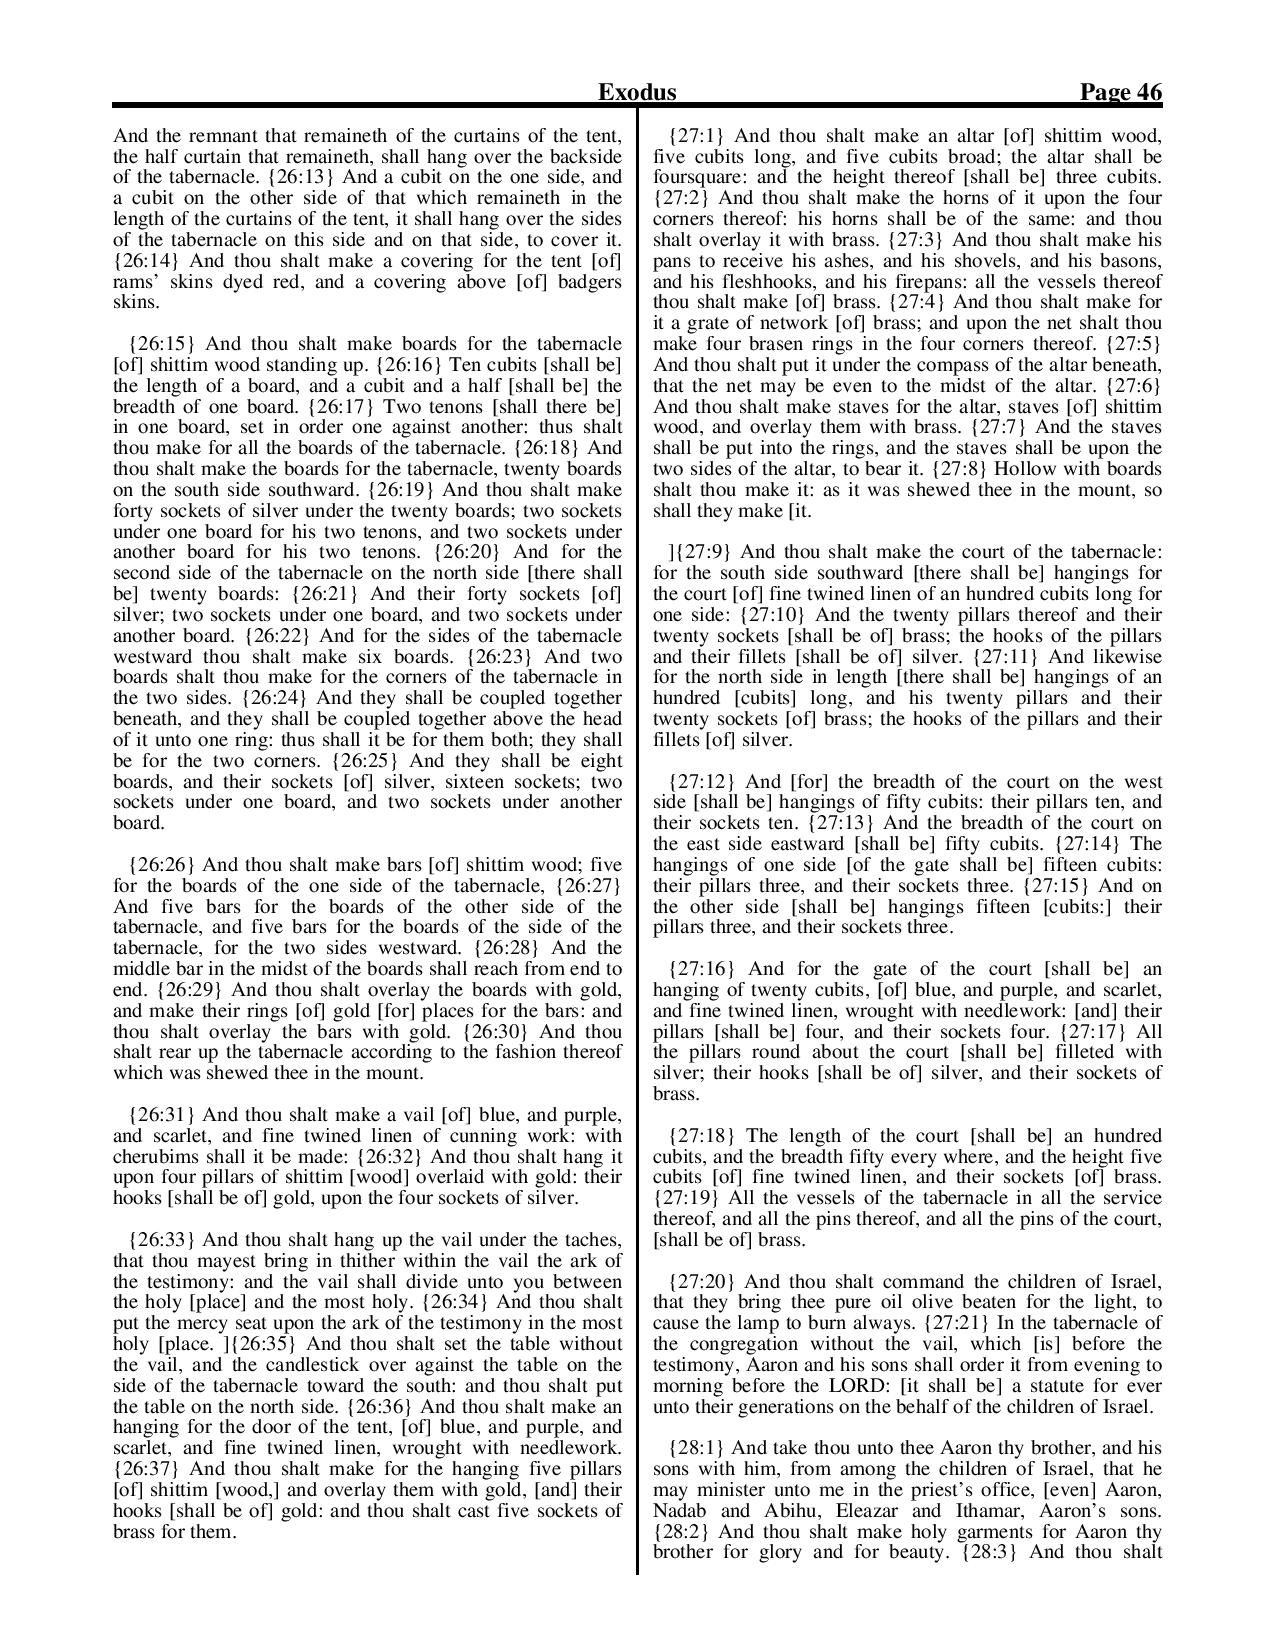 King-James-Bible-KJV-Bible-PDF-page-067